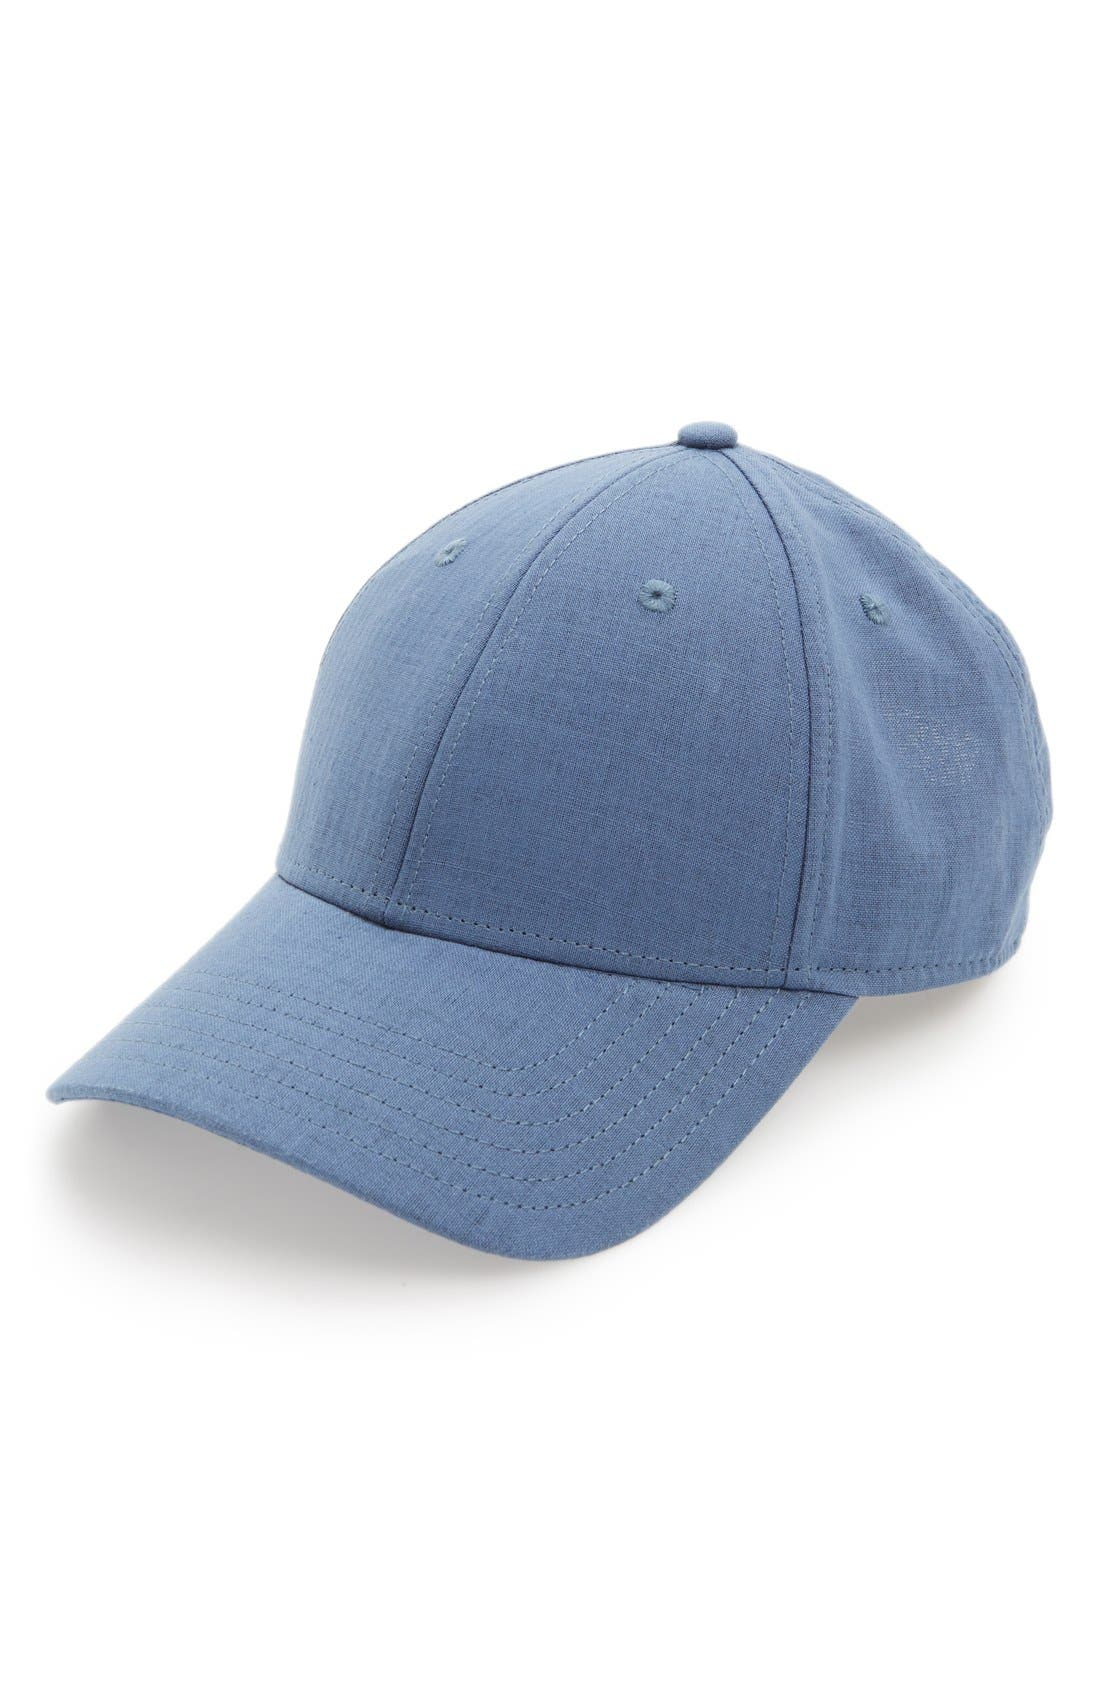 Gents Cotton & Linen Baseball Cap